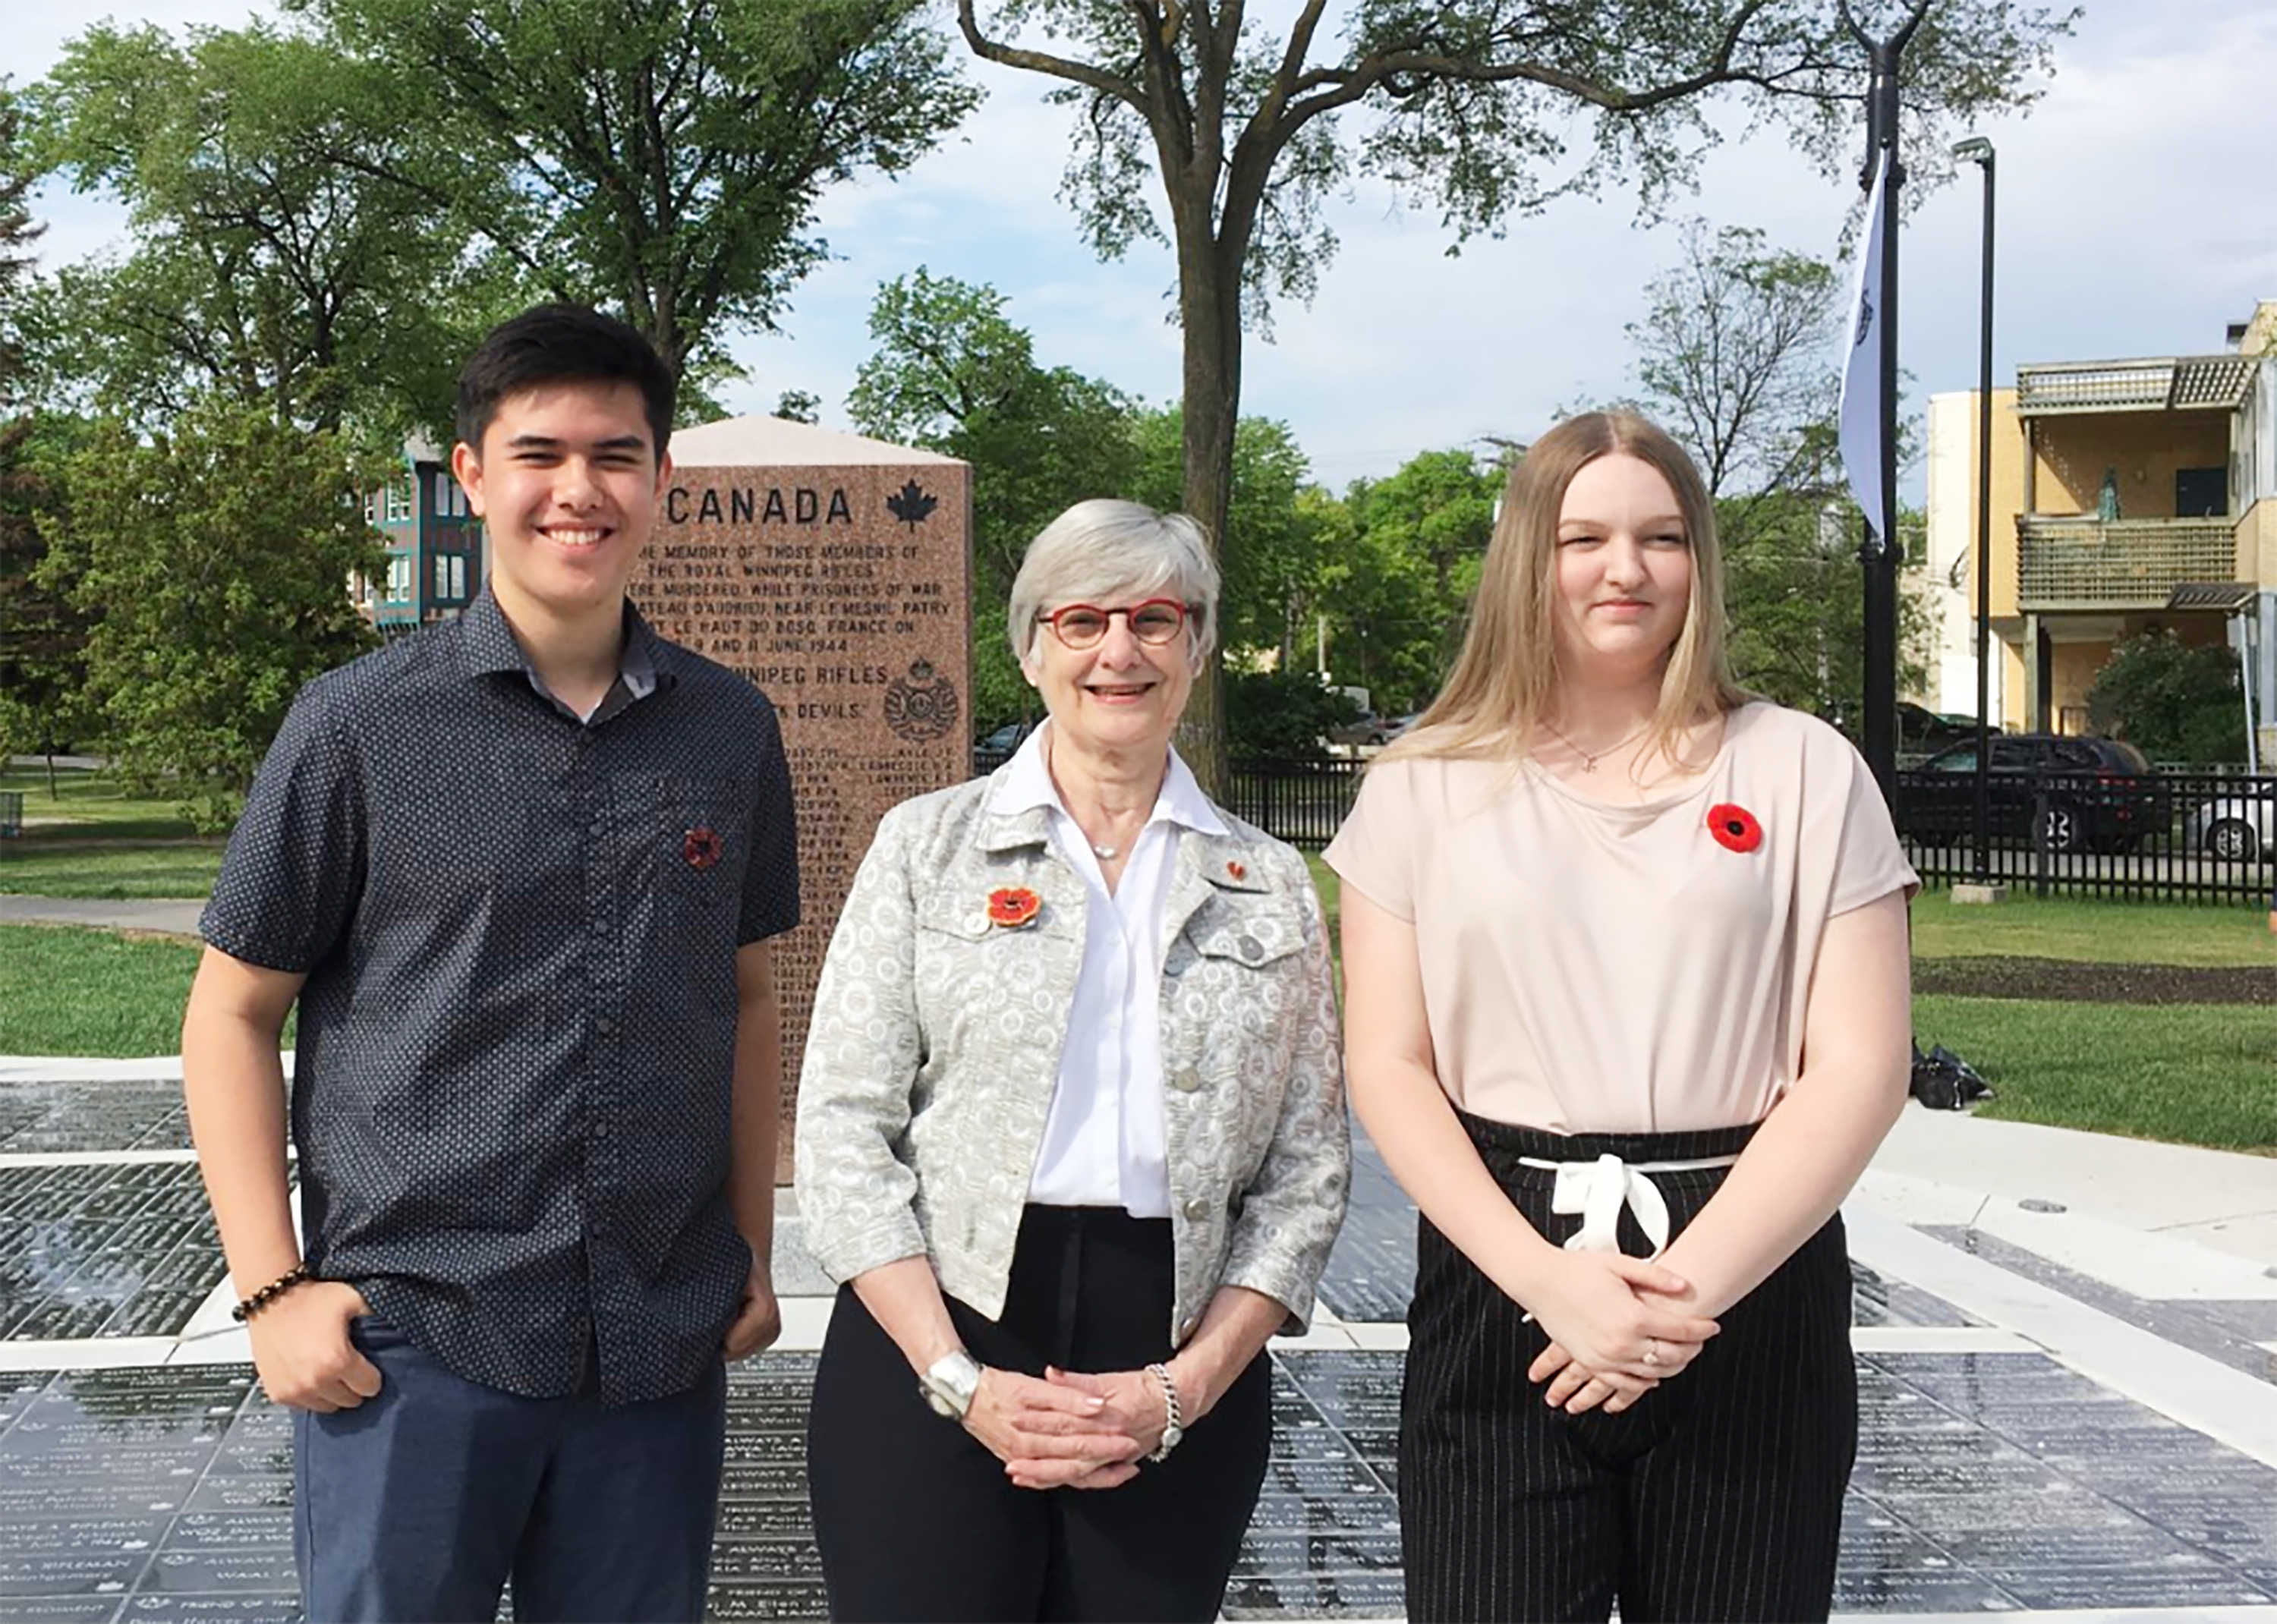 Saturday, June 8, 2019 — Senator Patricia Bovey congratulates Winnipeg students Jordan Talledo and Alyssa Mason who were selected to join 24 students to tour Canadian battlefields of the first and second world wars as part of the Juno75 Student Pilgrimage in July. This once-in-a-lifetime opportunity for high school students from across Canada is sponsored by the Juno Beach Centre and will enable participants to travel to Northern France and Belgium to gain first-hand knowledge of Canada's participation in the first and second world wars.